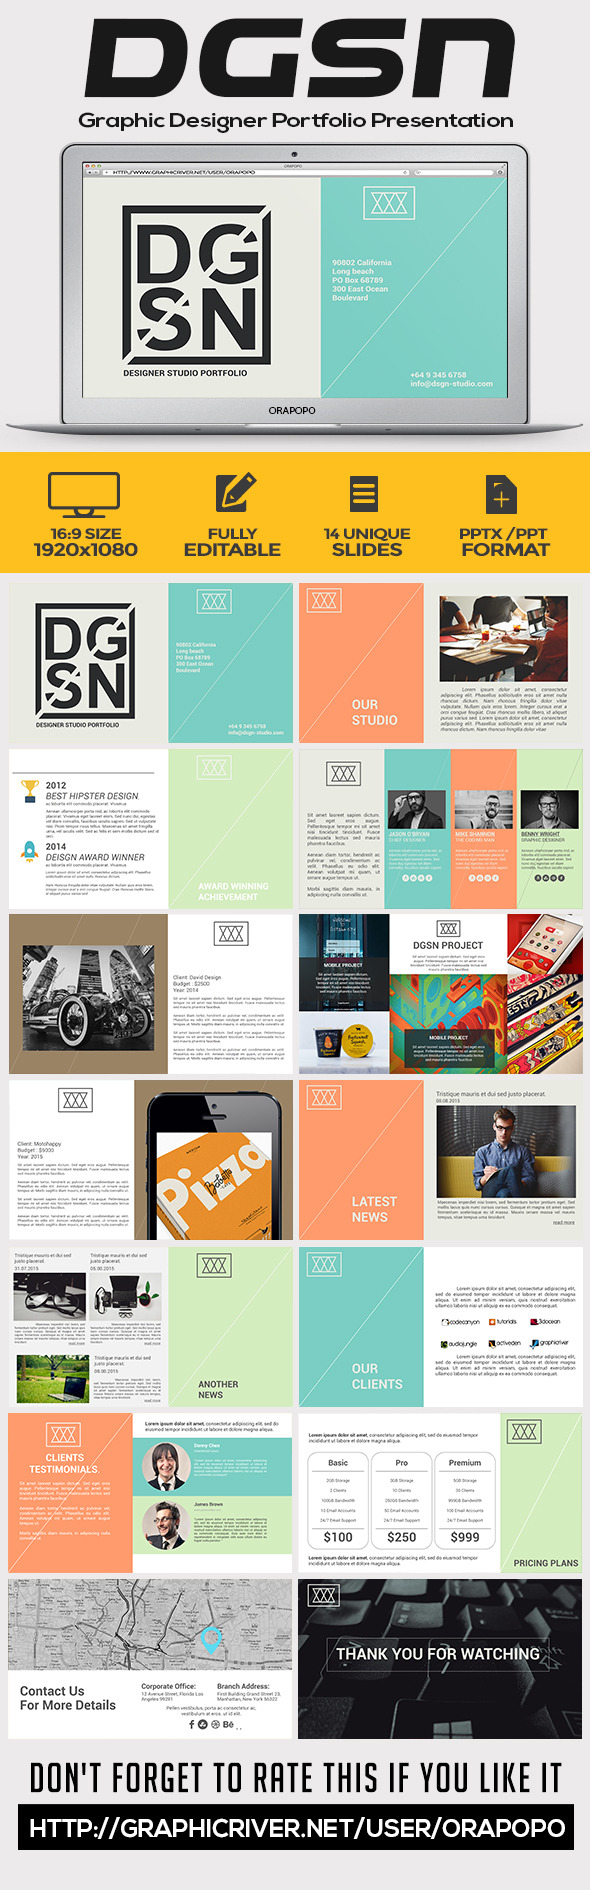 GraphicRiver DGSN Graphic Designer Portfolio Presentation 11258303